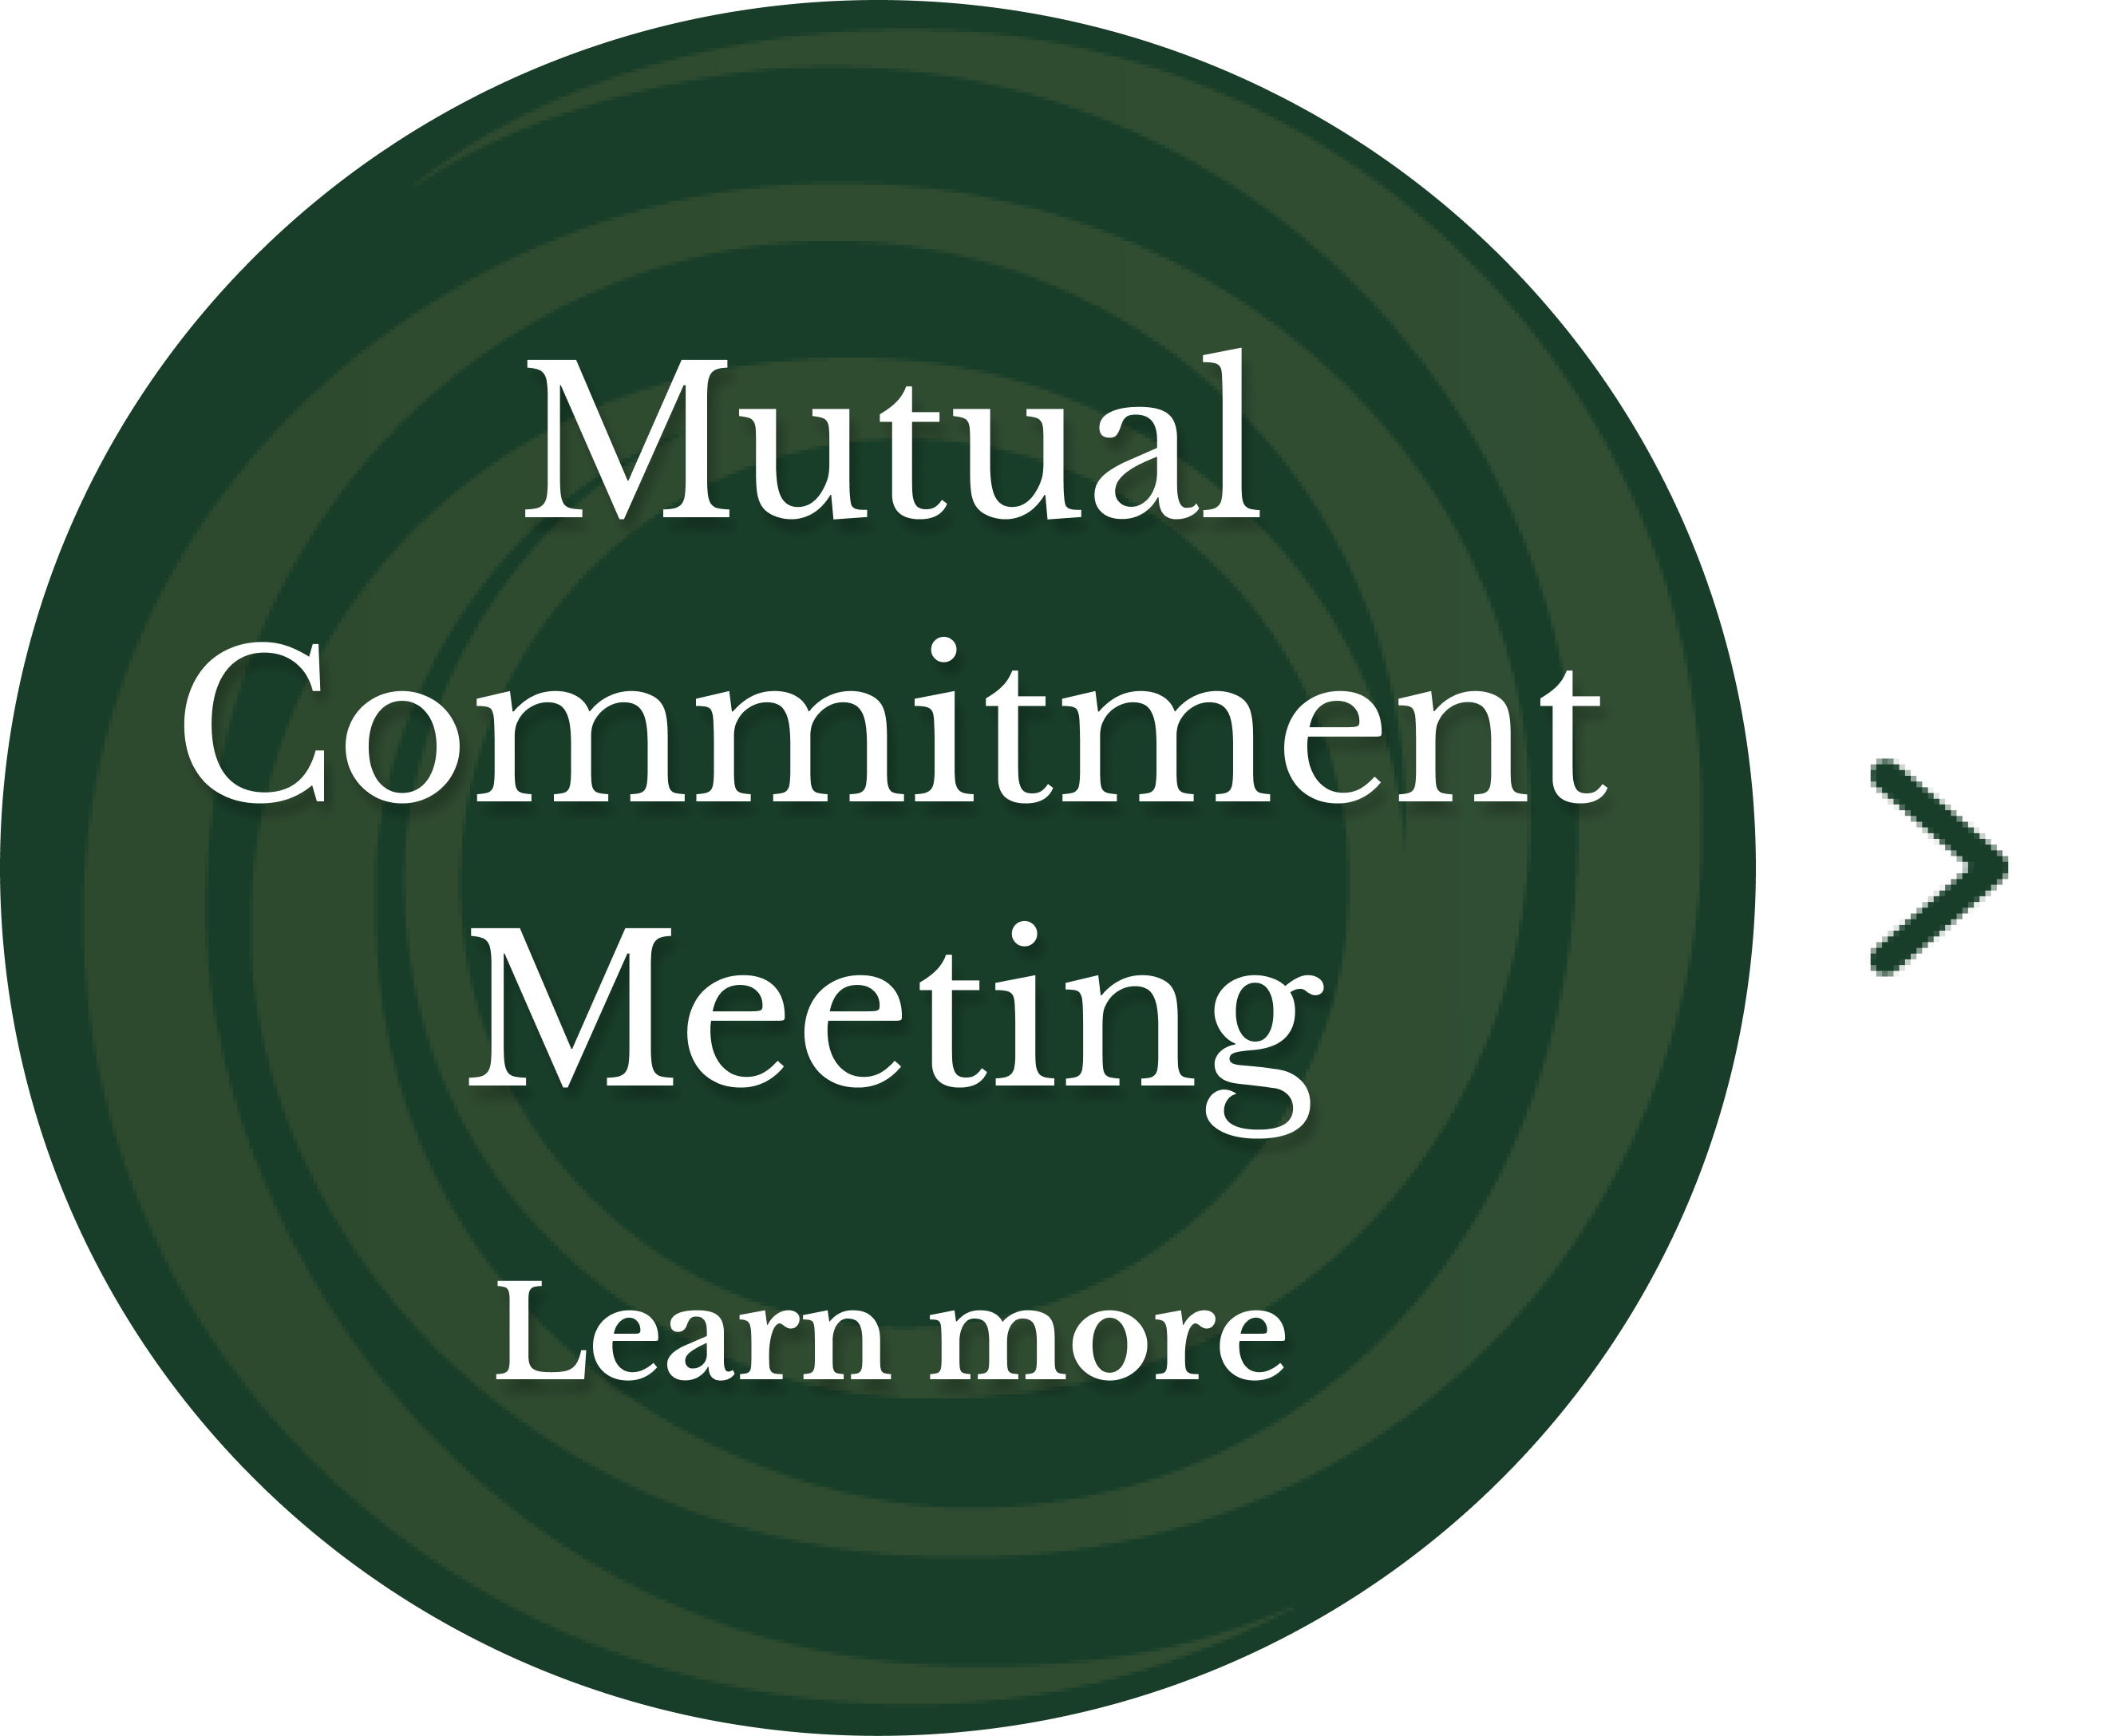 For Mutual Commitment Meeting details click here